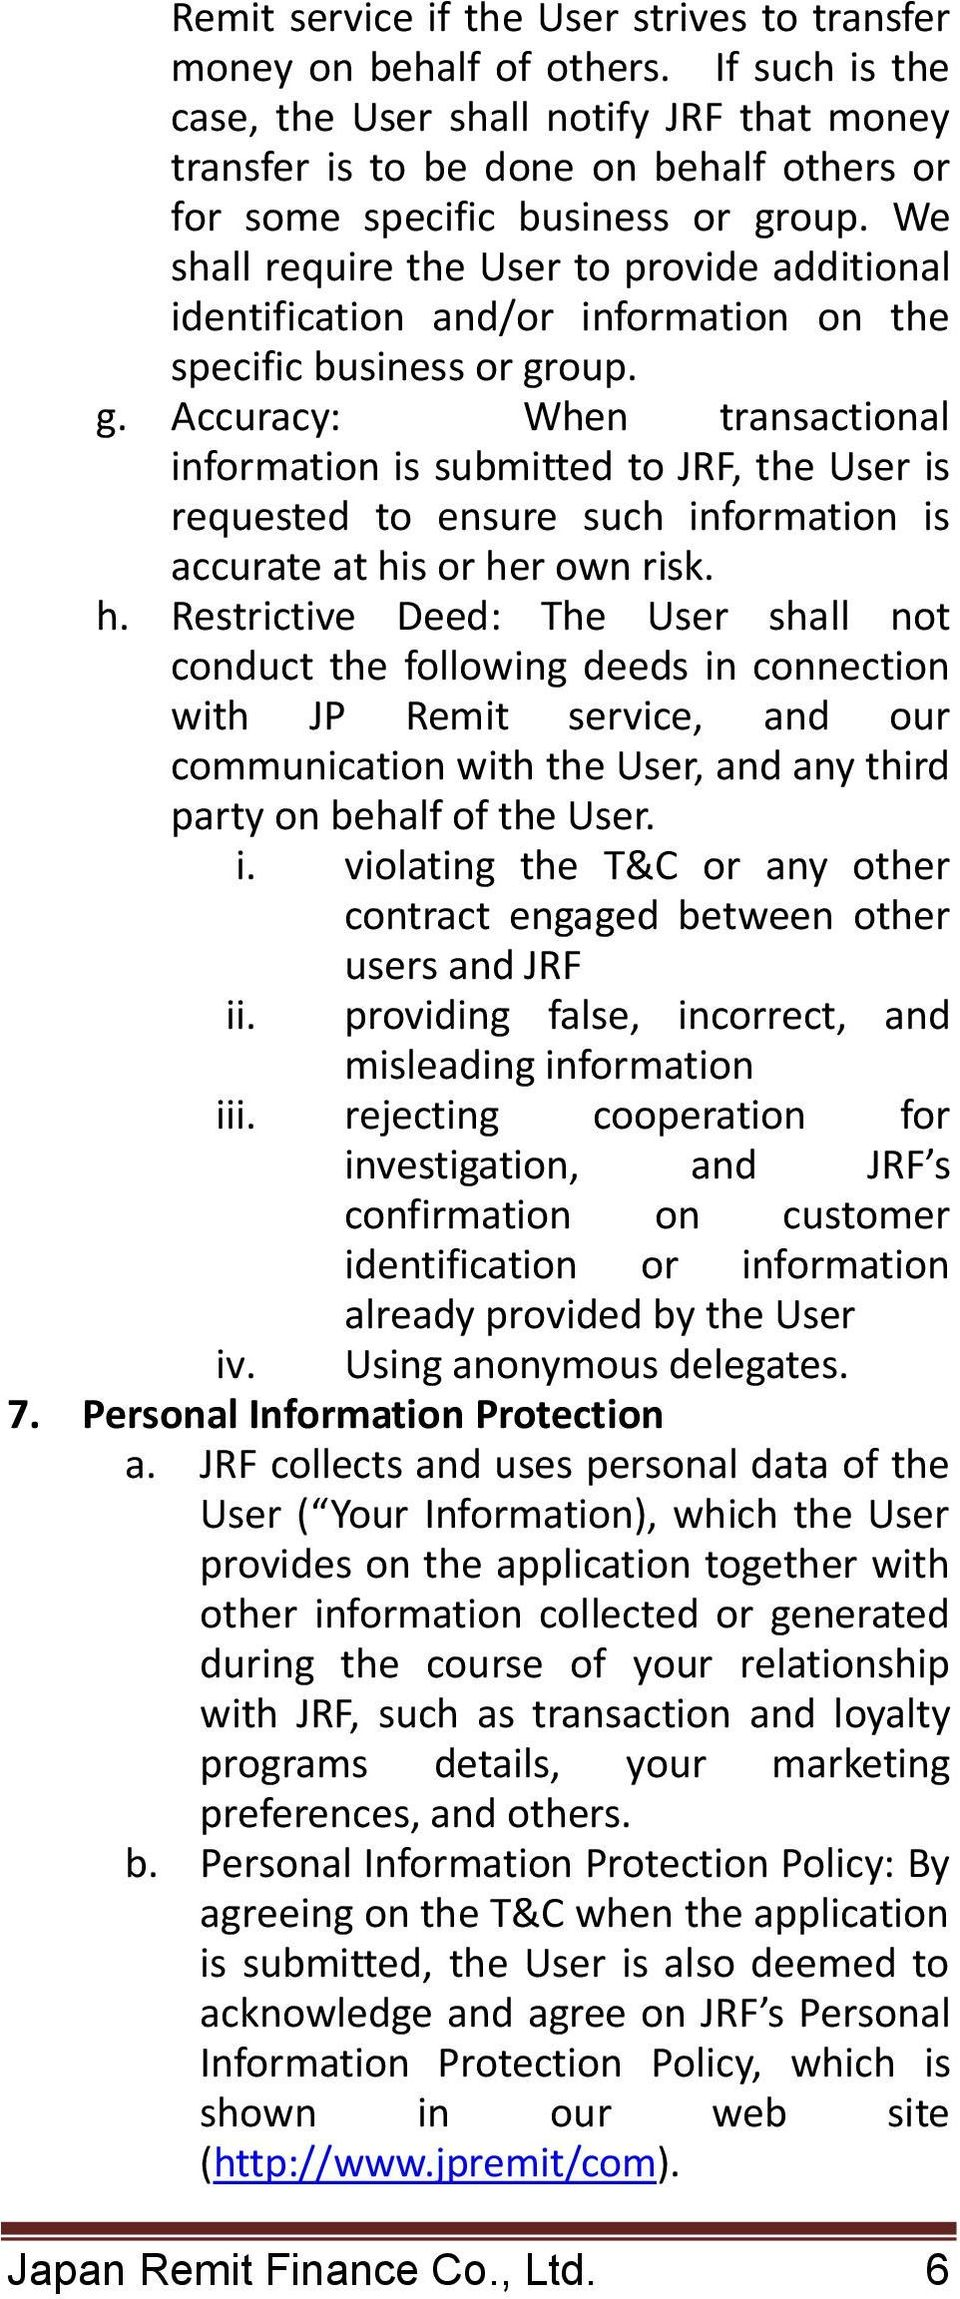 We shall require the User to provide additional identification and/or information on the specific business or gr